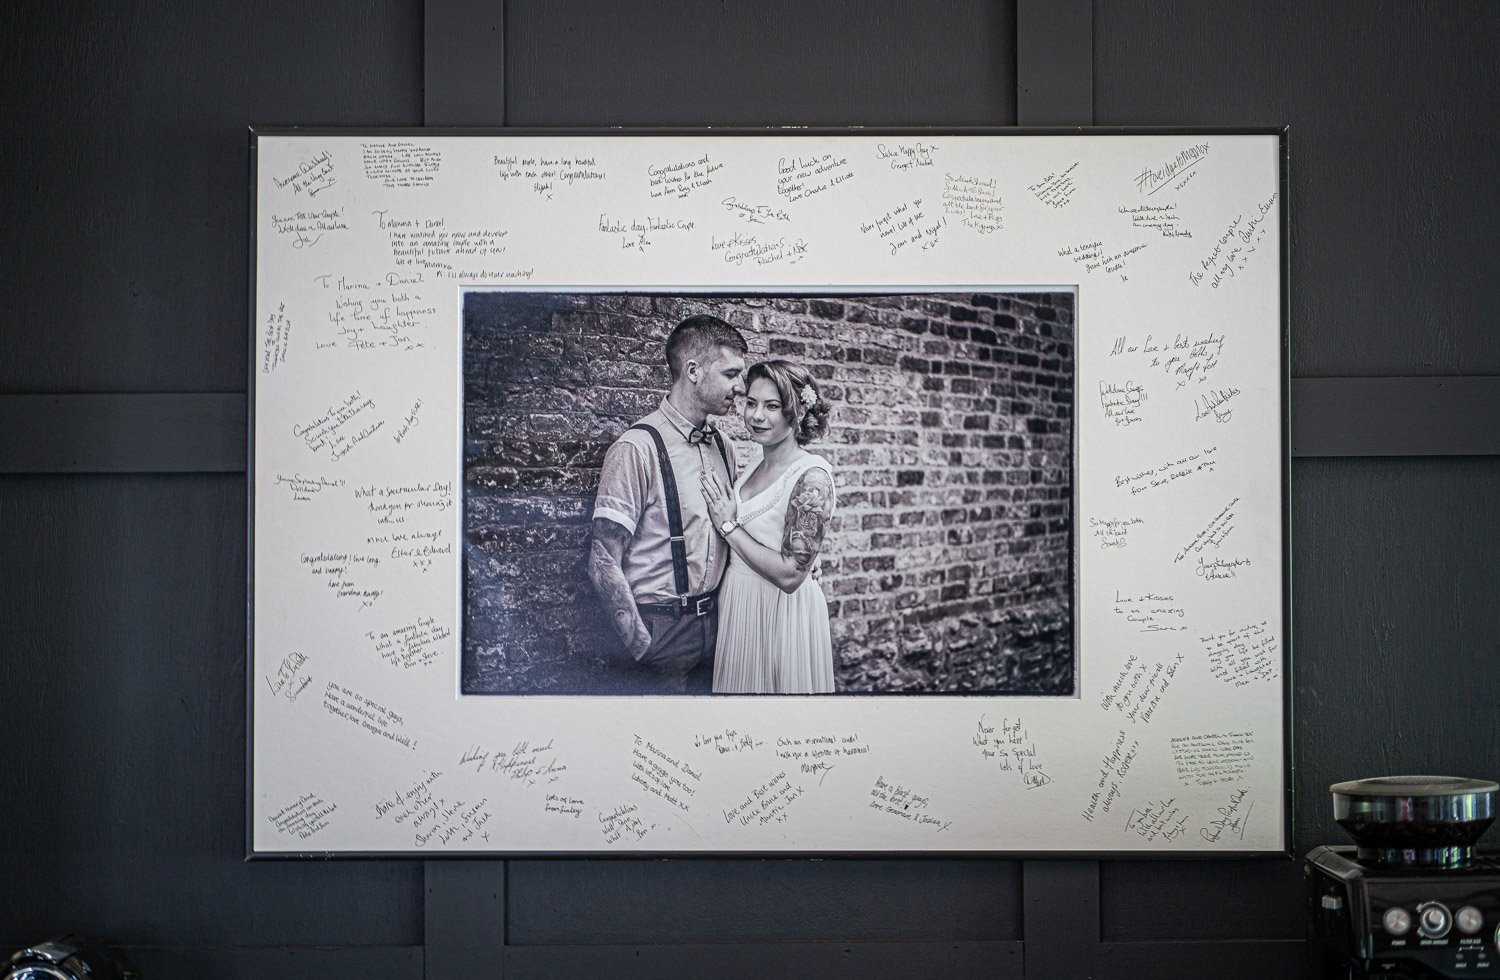 signing frame hanging on a panelled wall, showing all the signatures as well as the couple in a black and white image.